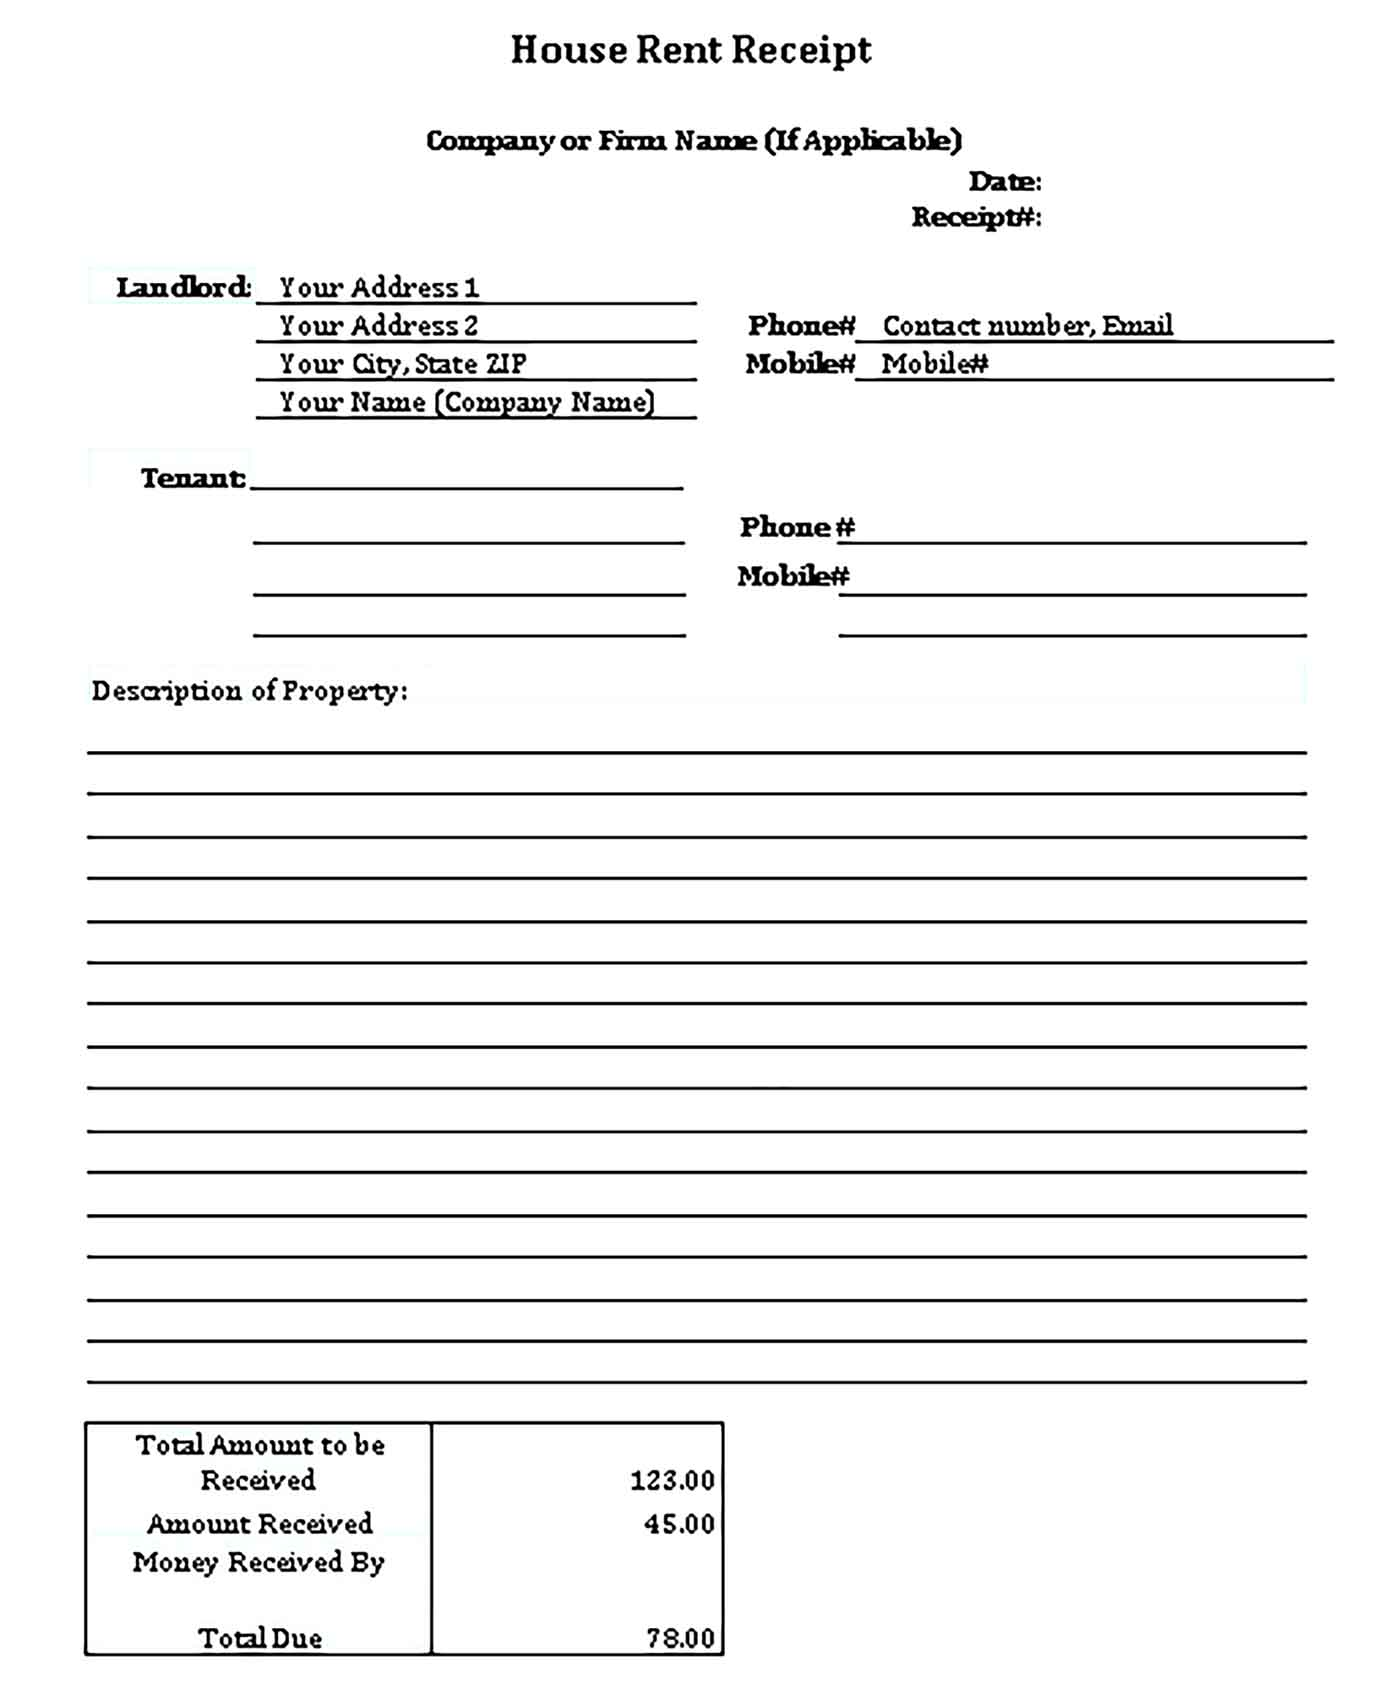 Sample House Rent Receipt Templates 1